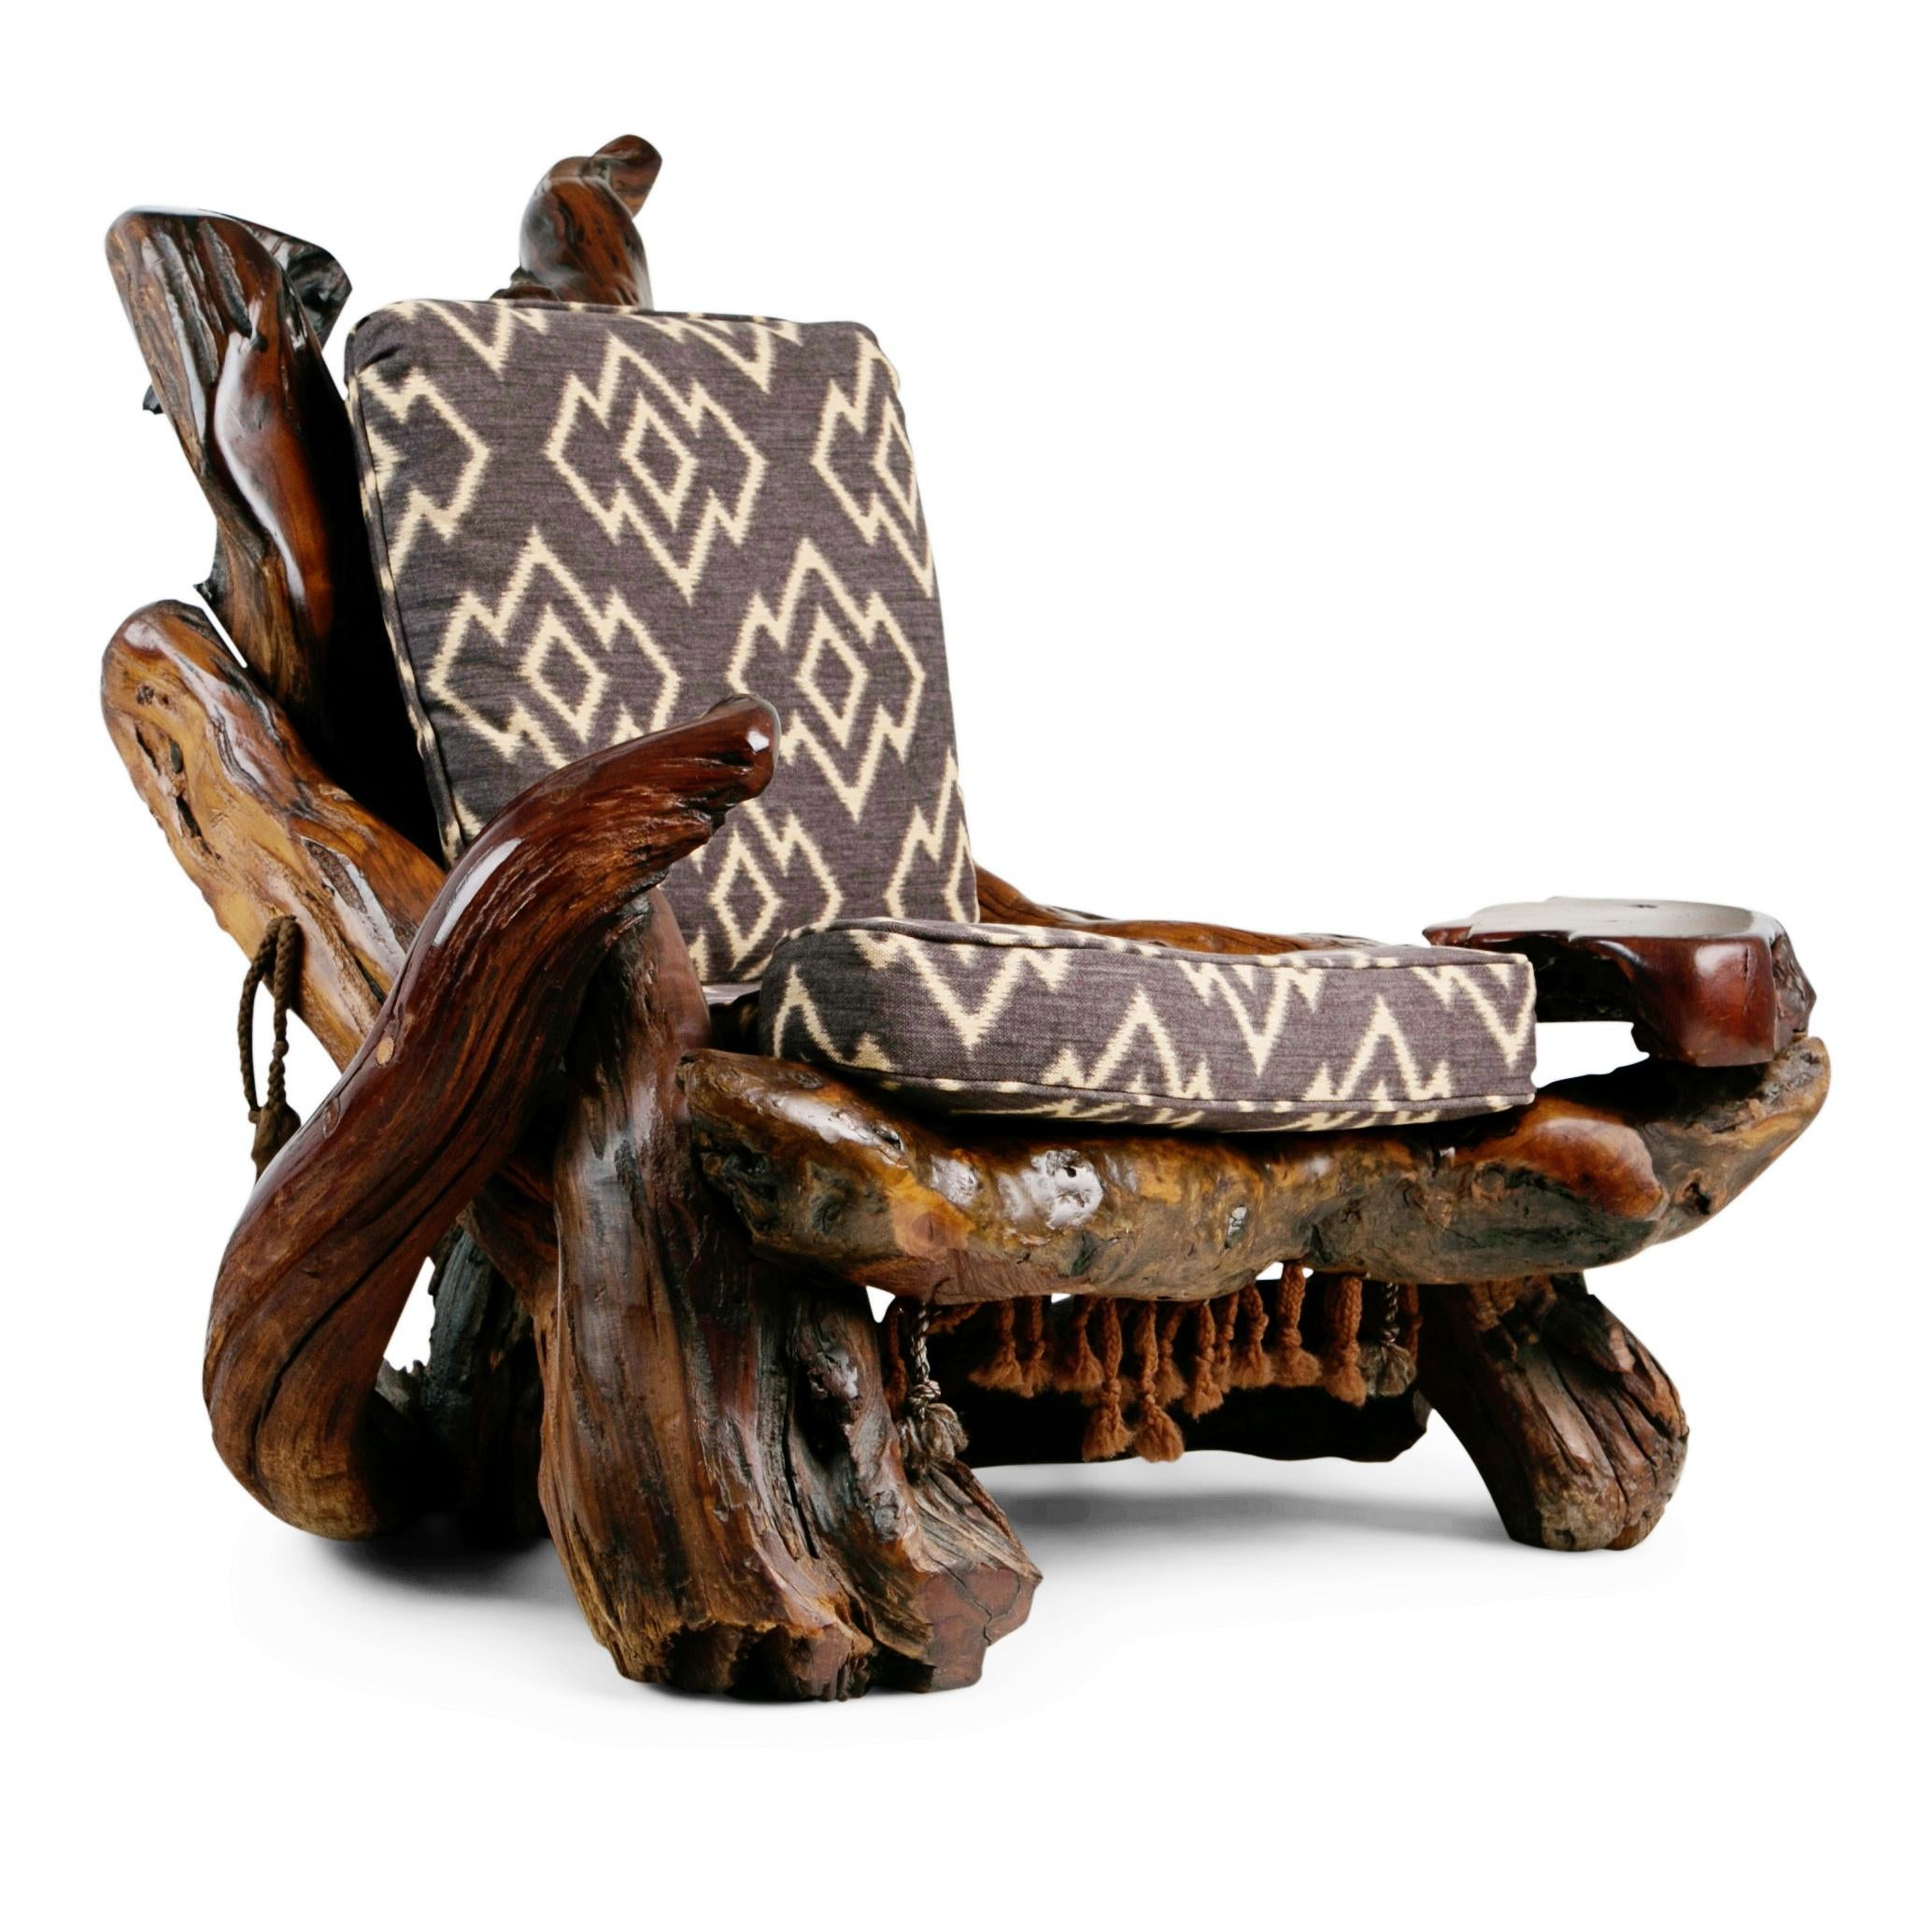 Extraordinary Artisan Sculptural Root Wood Armchair Handcrafted From  Naturally Free Formed Burl Redwood Which Has